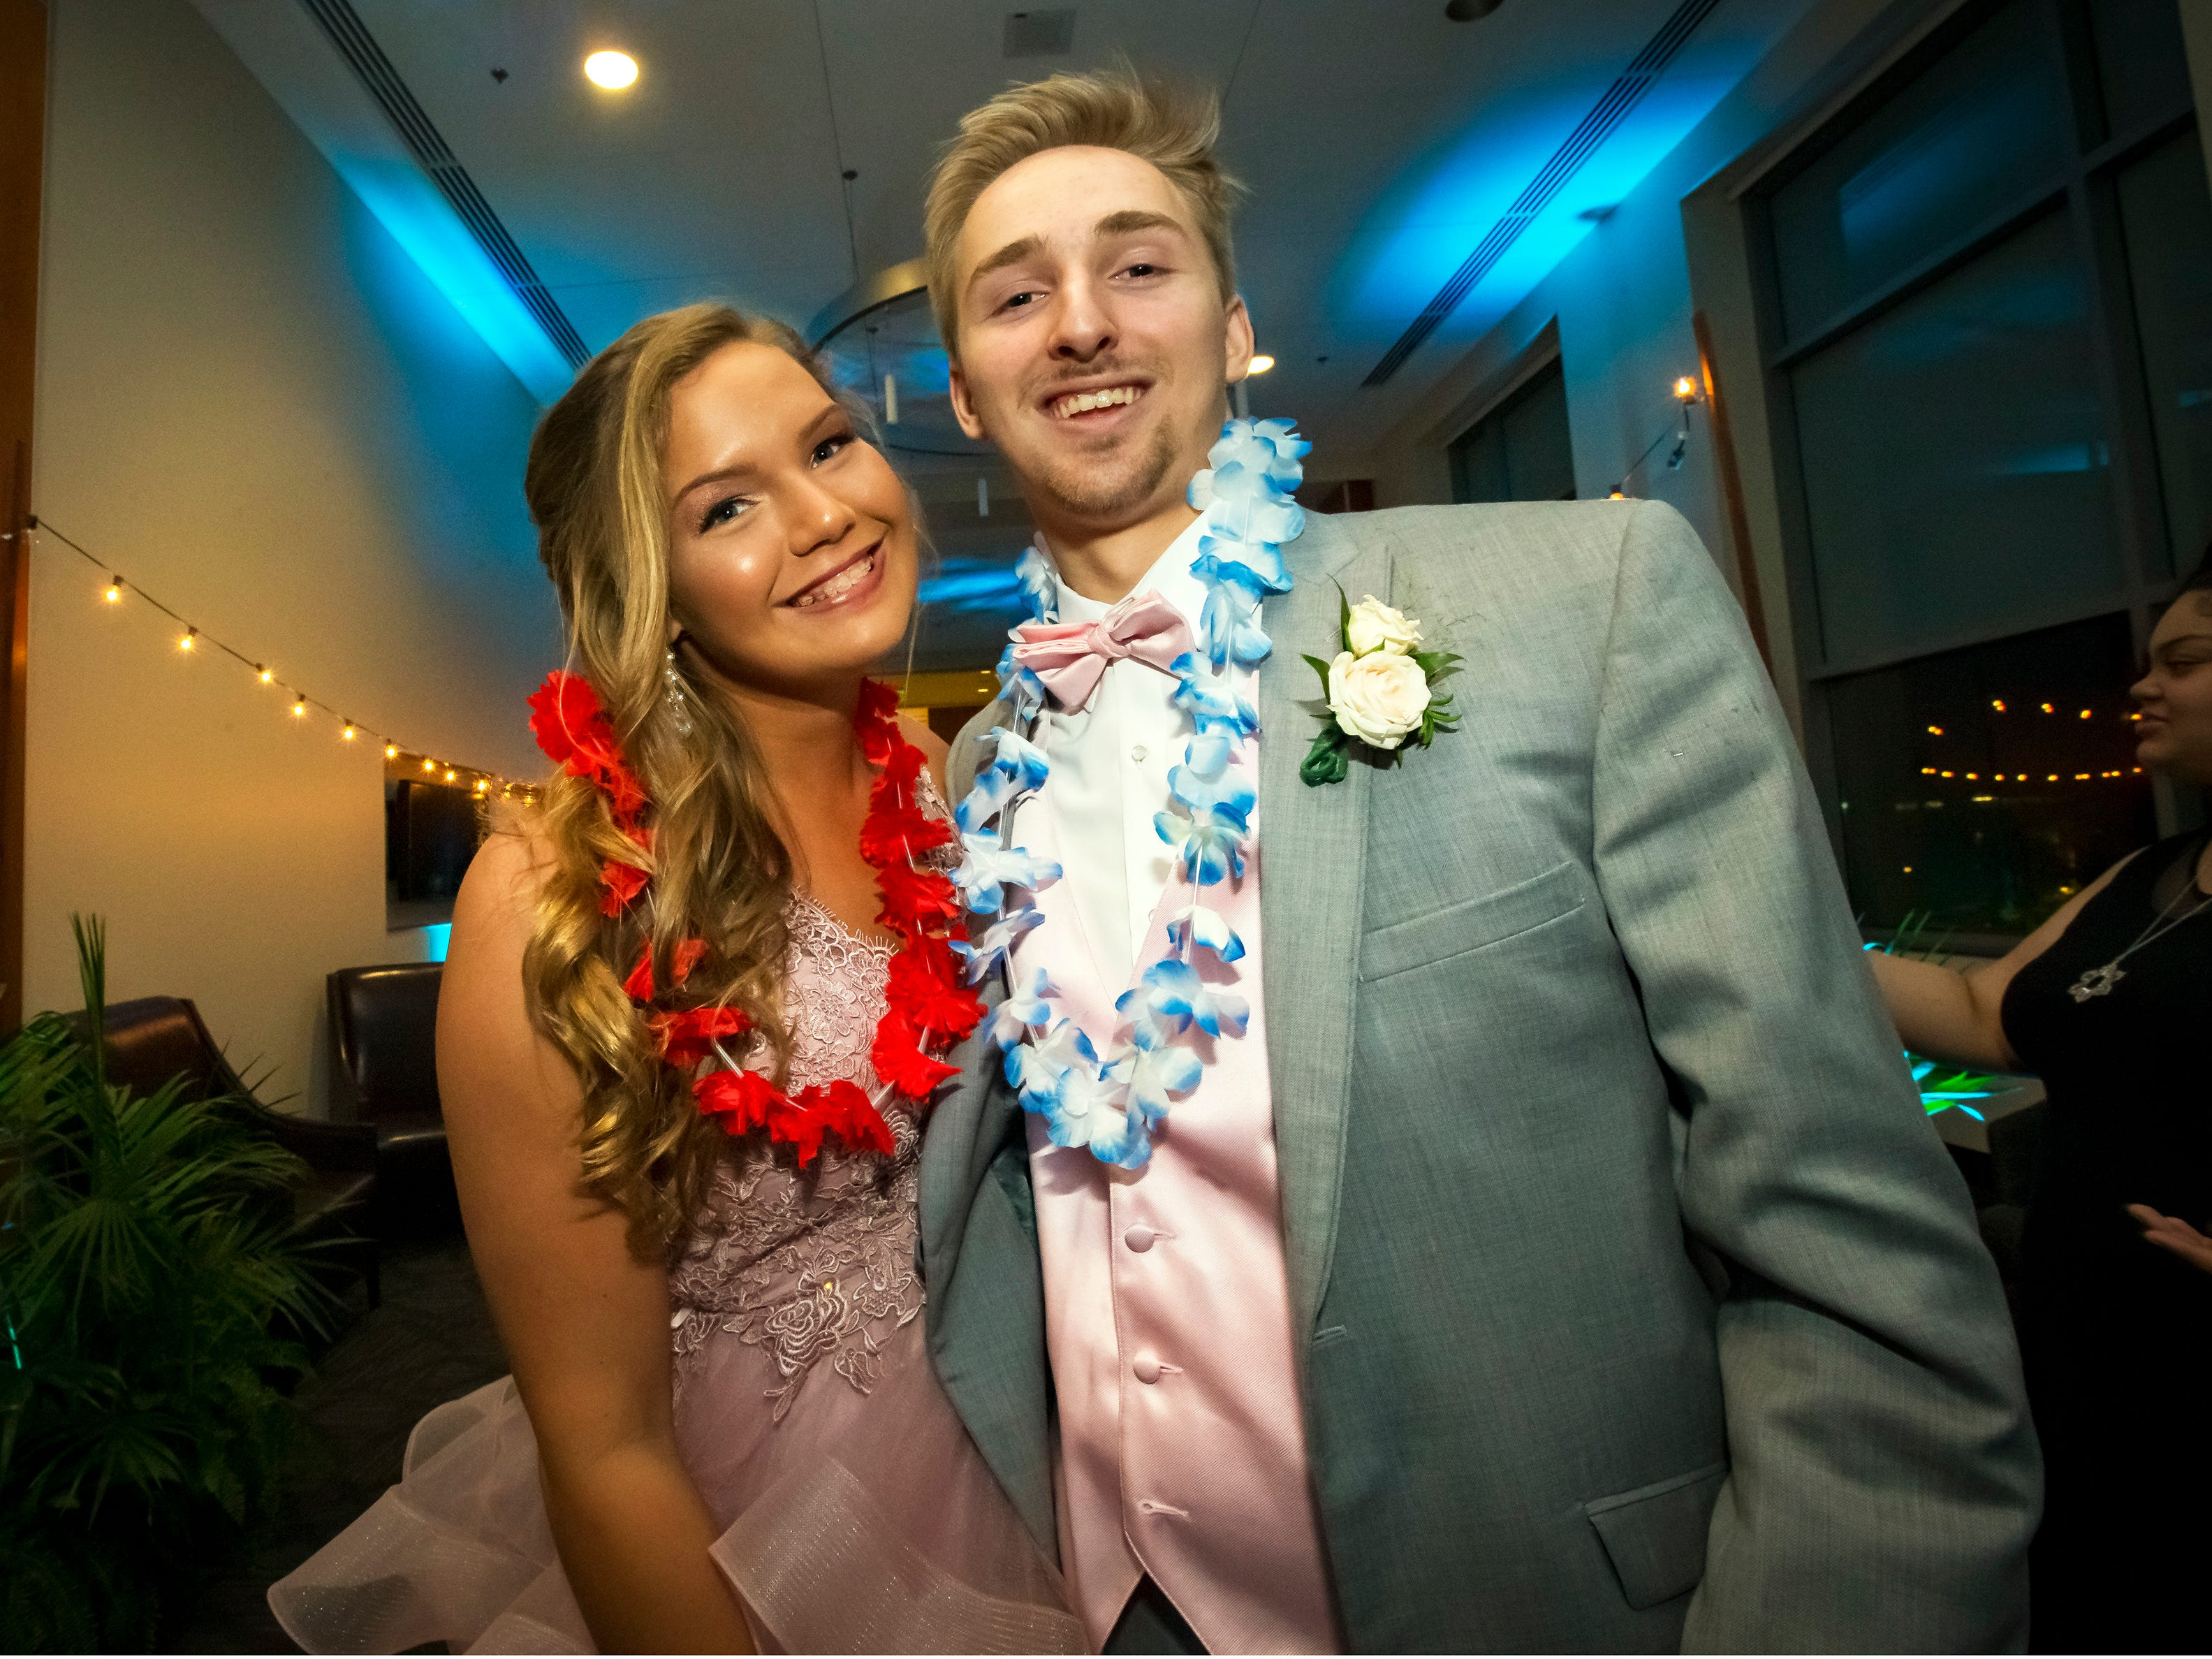 Siegel High School prom at MTSU, Saturday, April 13, 2019.